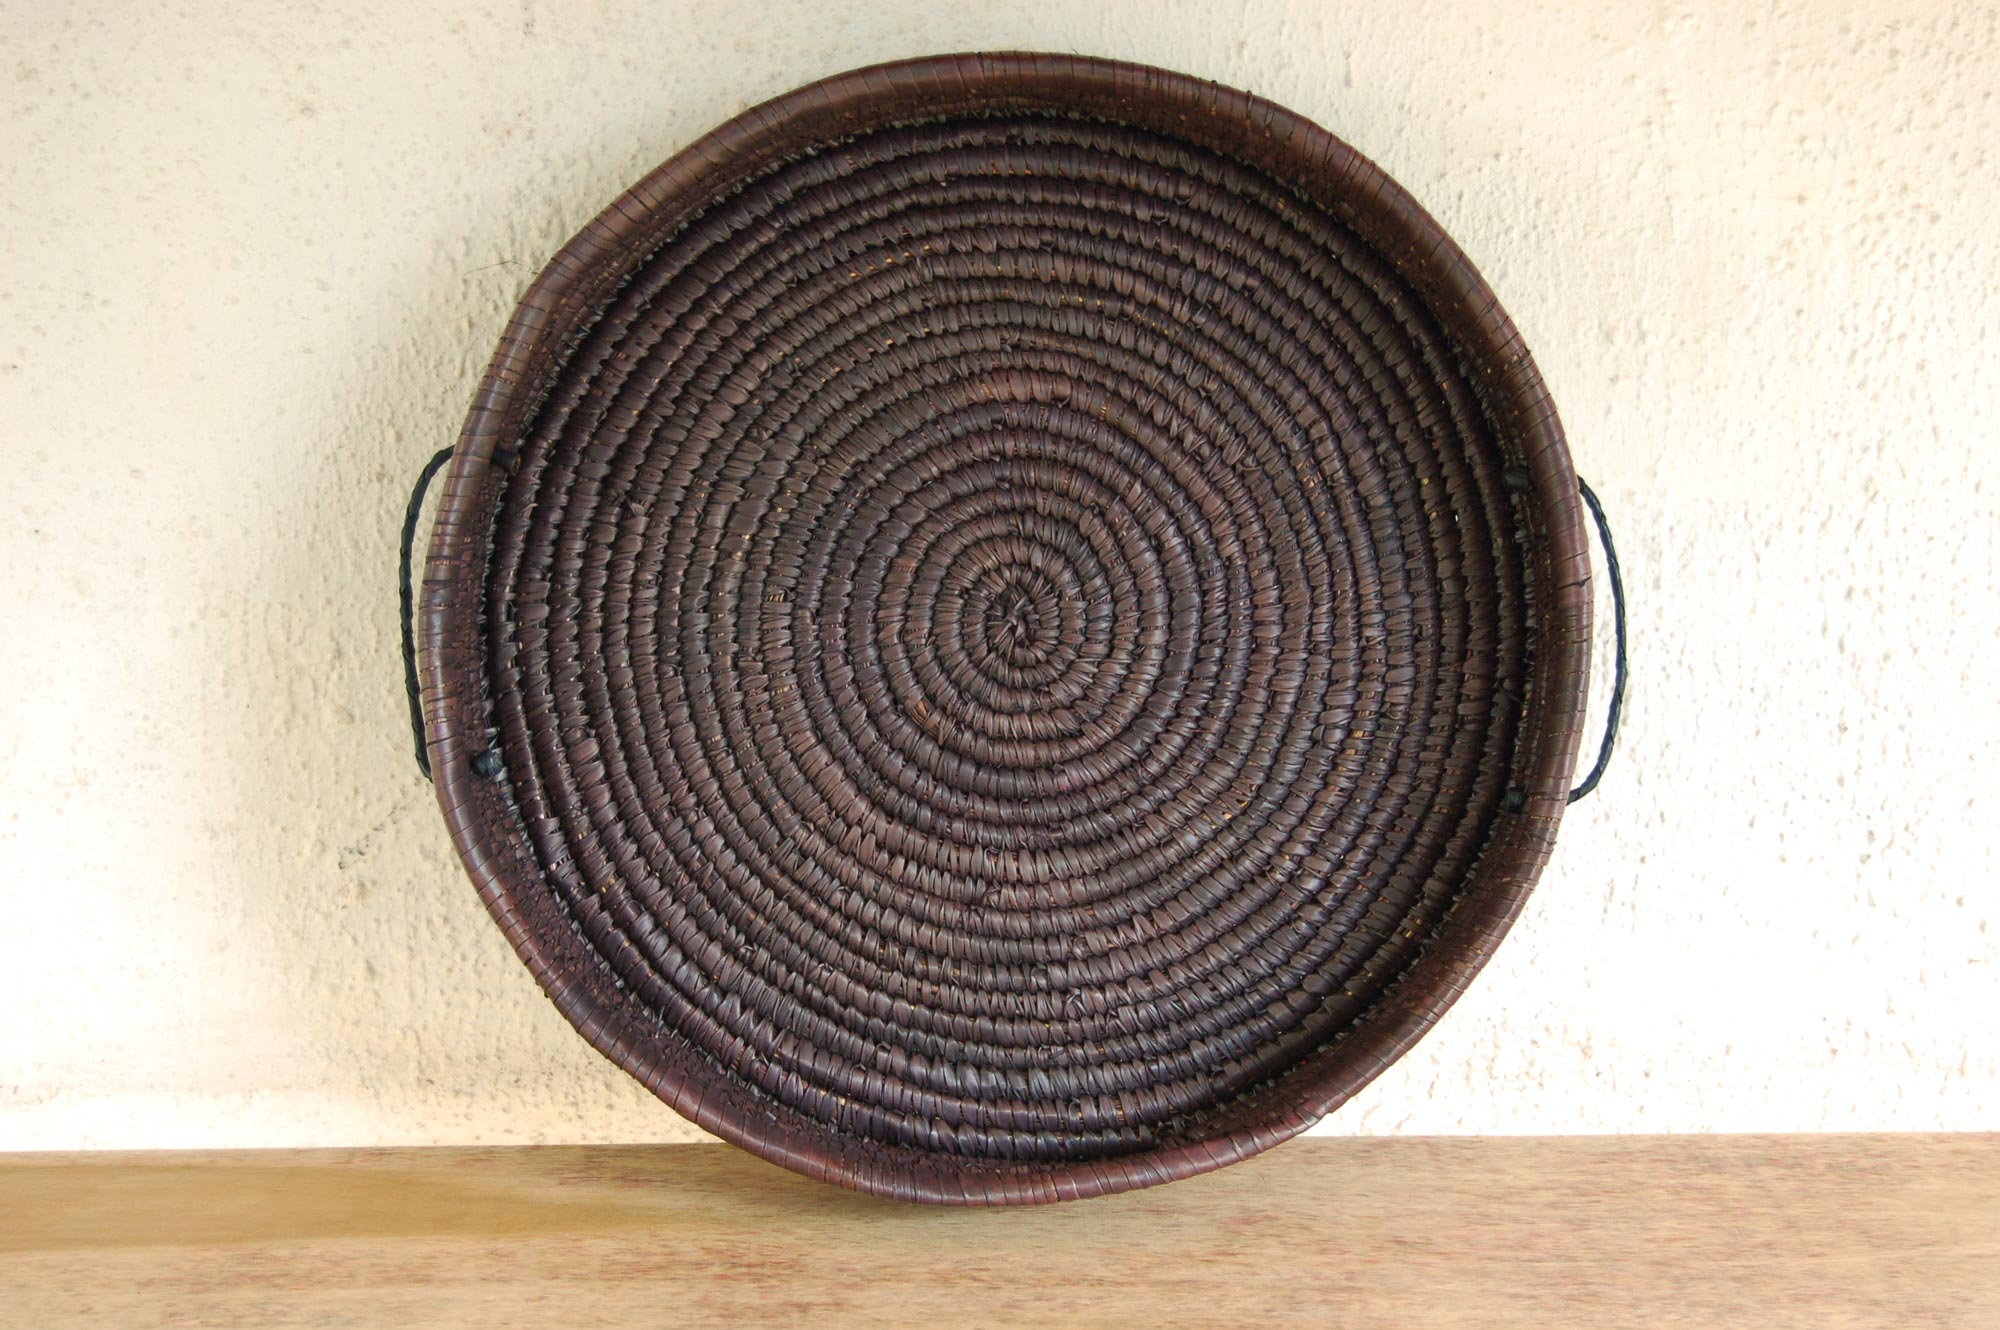 Woven Basket Platter ~20in (large chocolate-brown tabletop / floor basket tray)